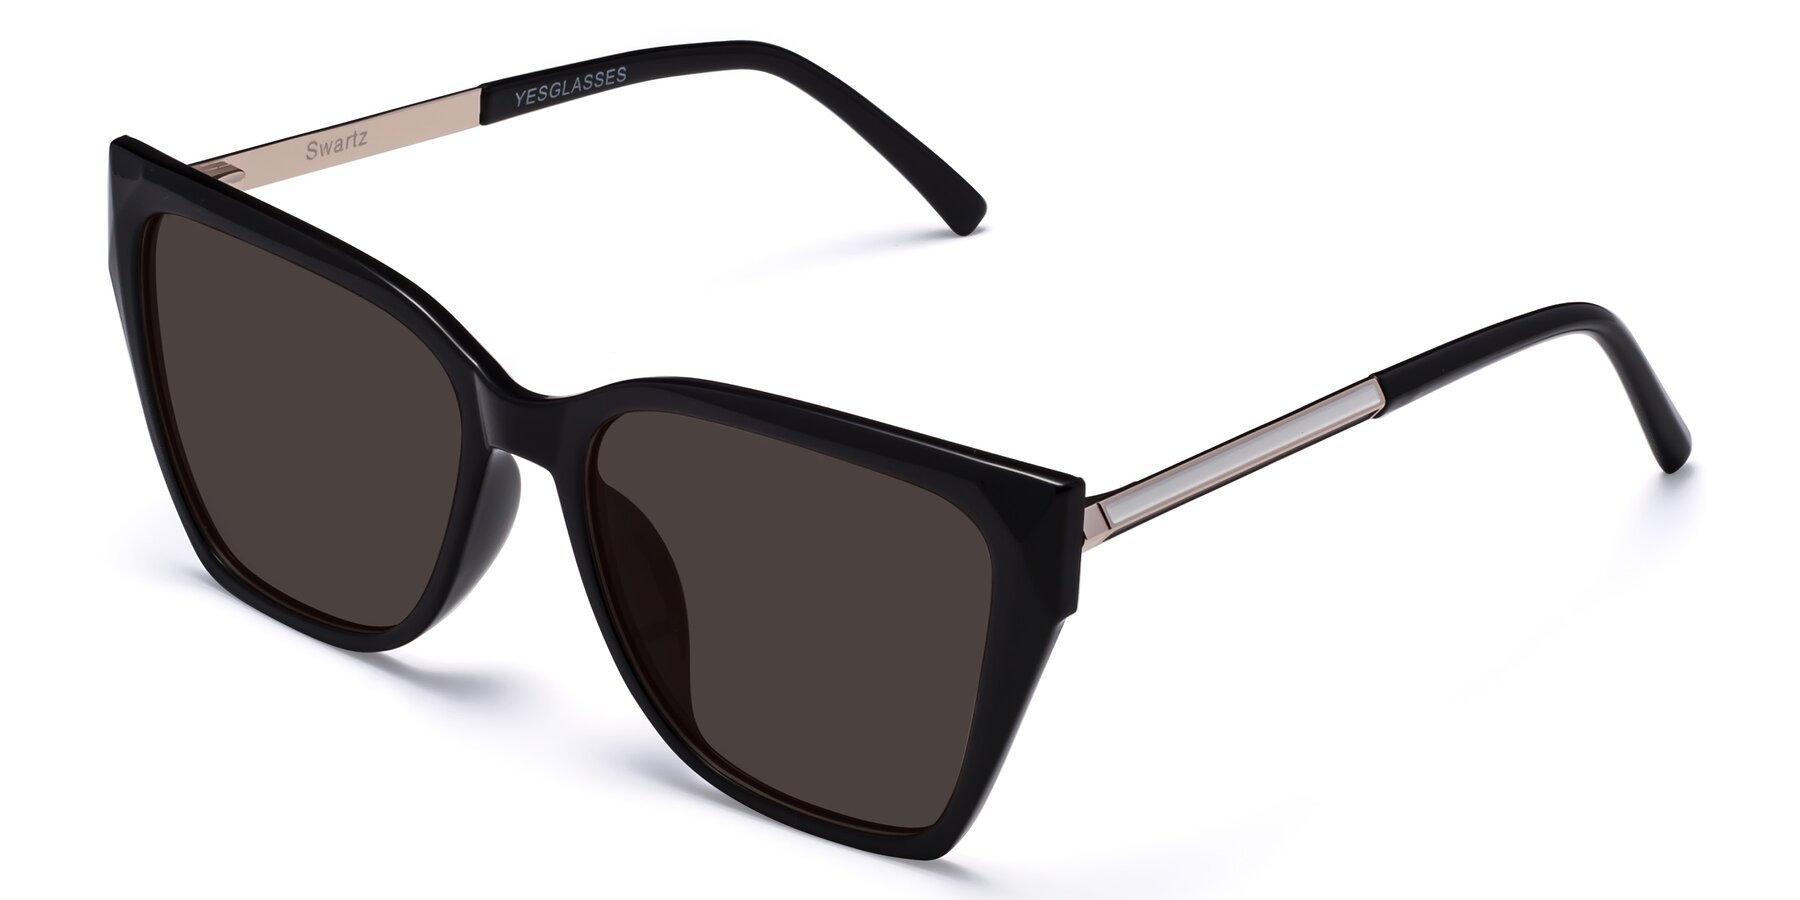 Angle of Swartz in Black with Gray Tinted Lenses